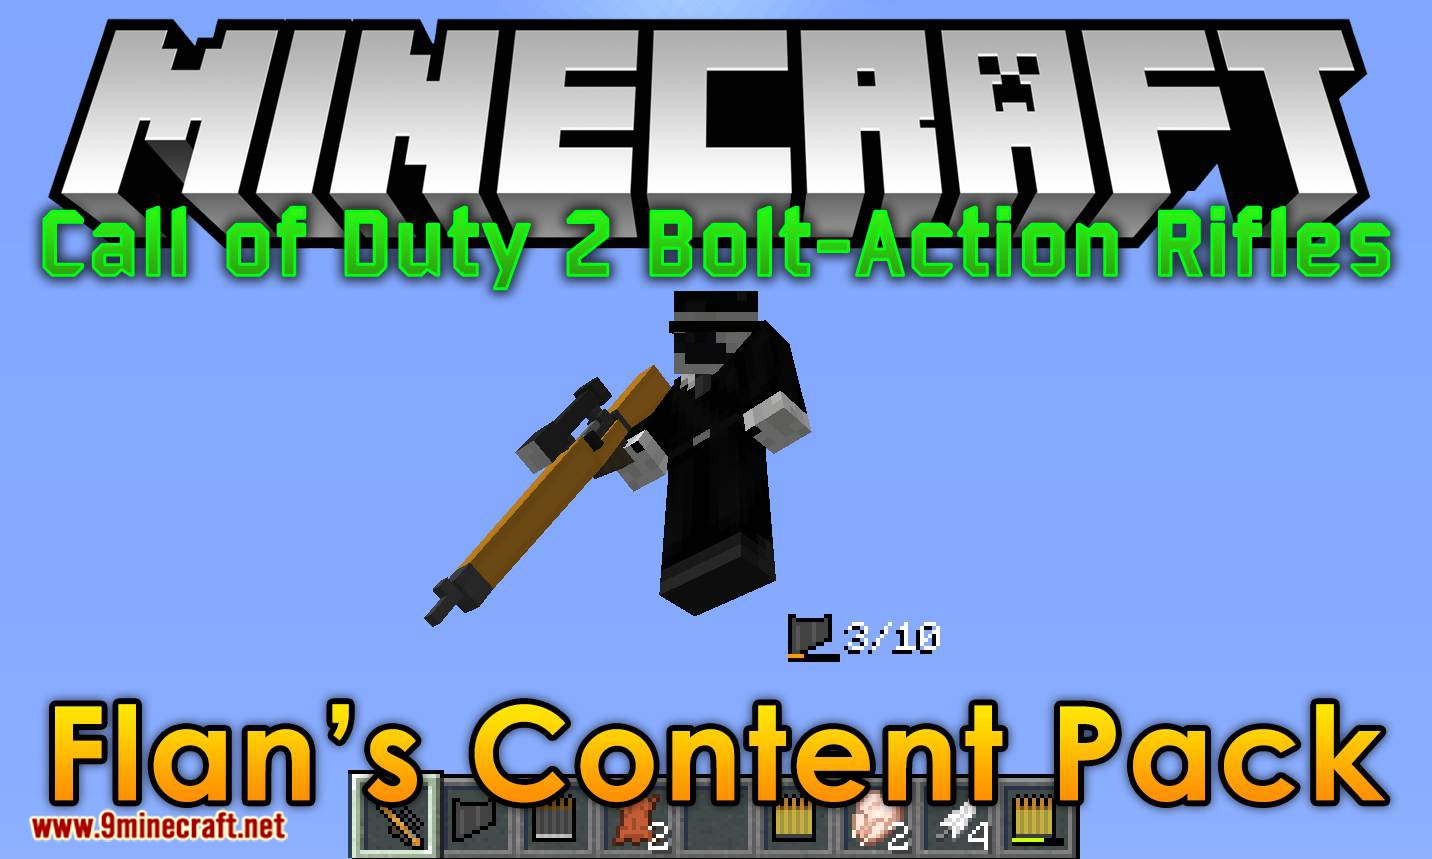 Flan_s Content Pack Call of Duty 2 Bolt-Action Rifles mod for minecraft logo